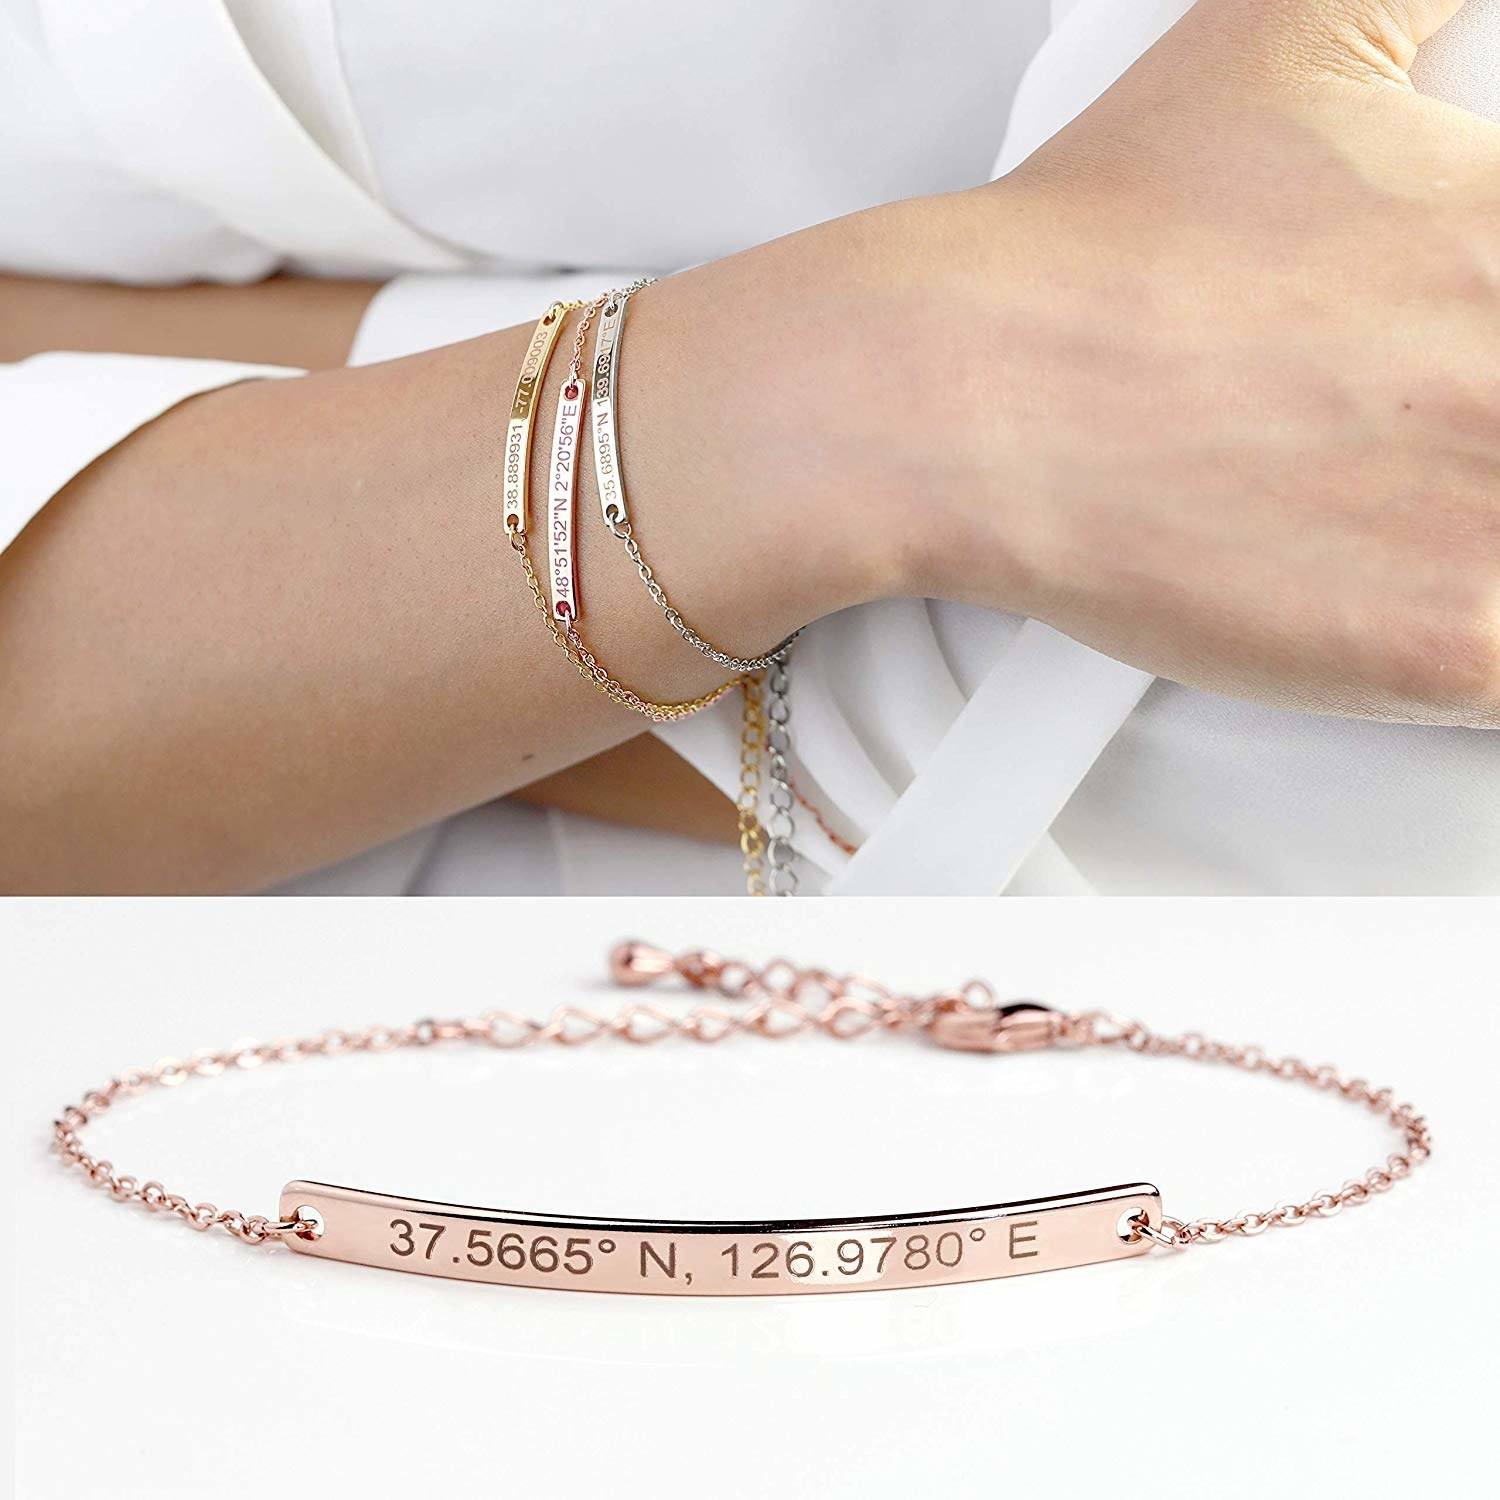 a thin bracelet with a bar in the middle with coordinates on it